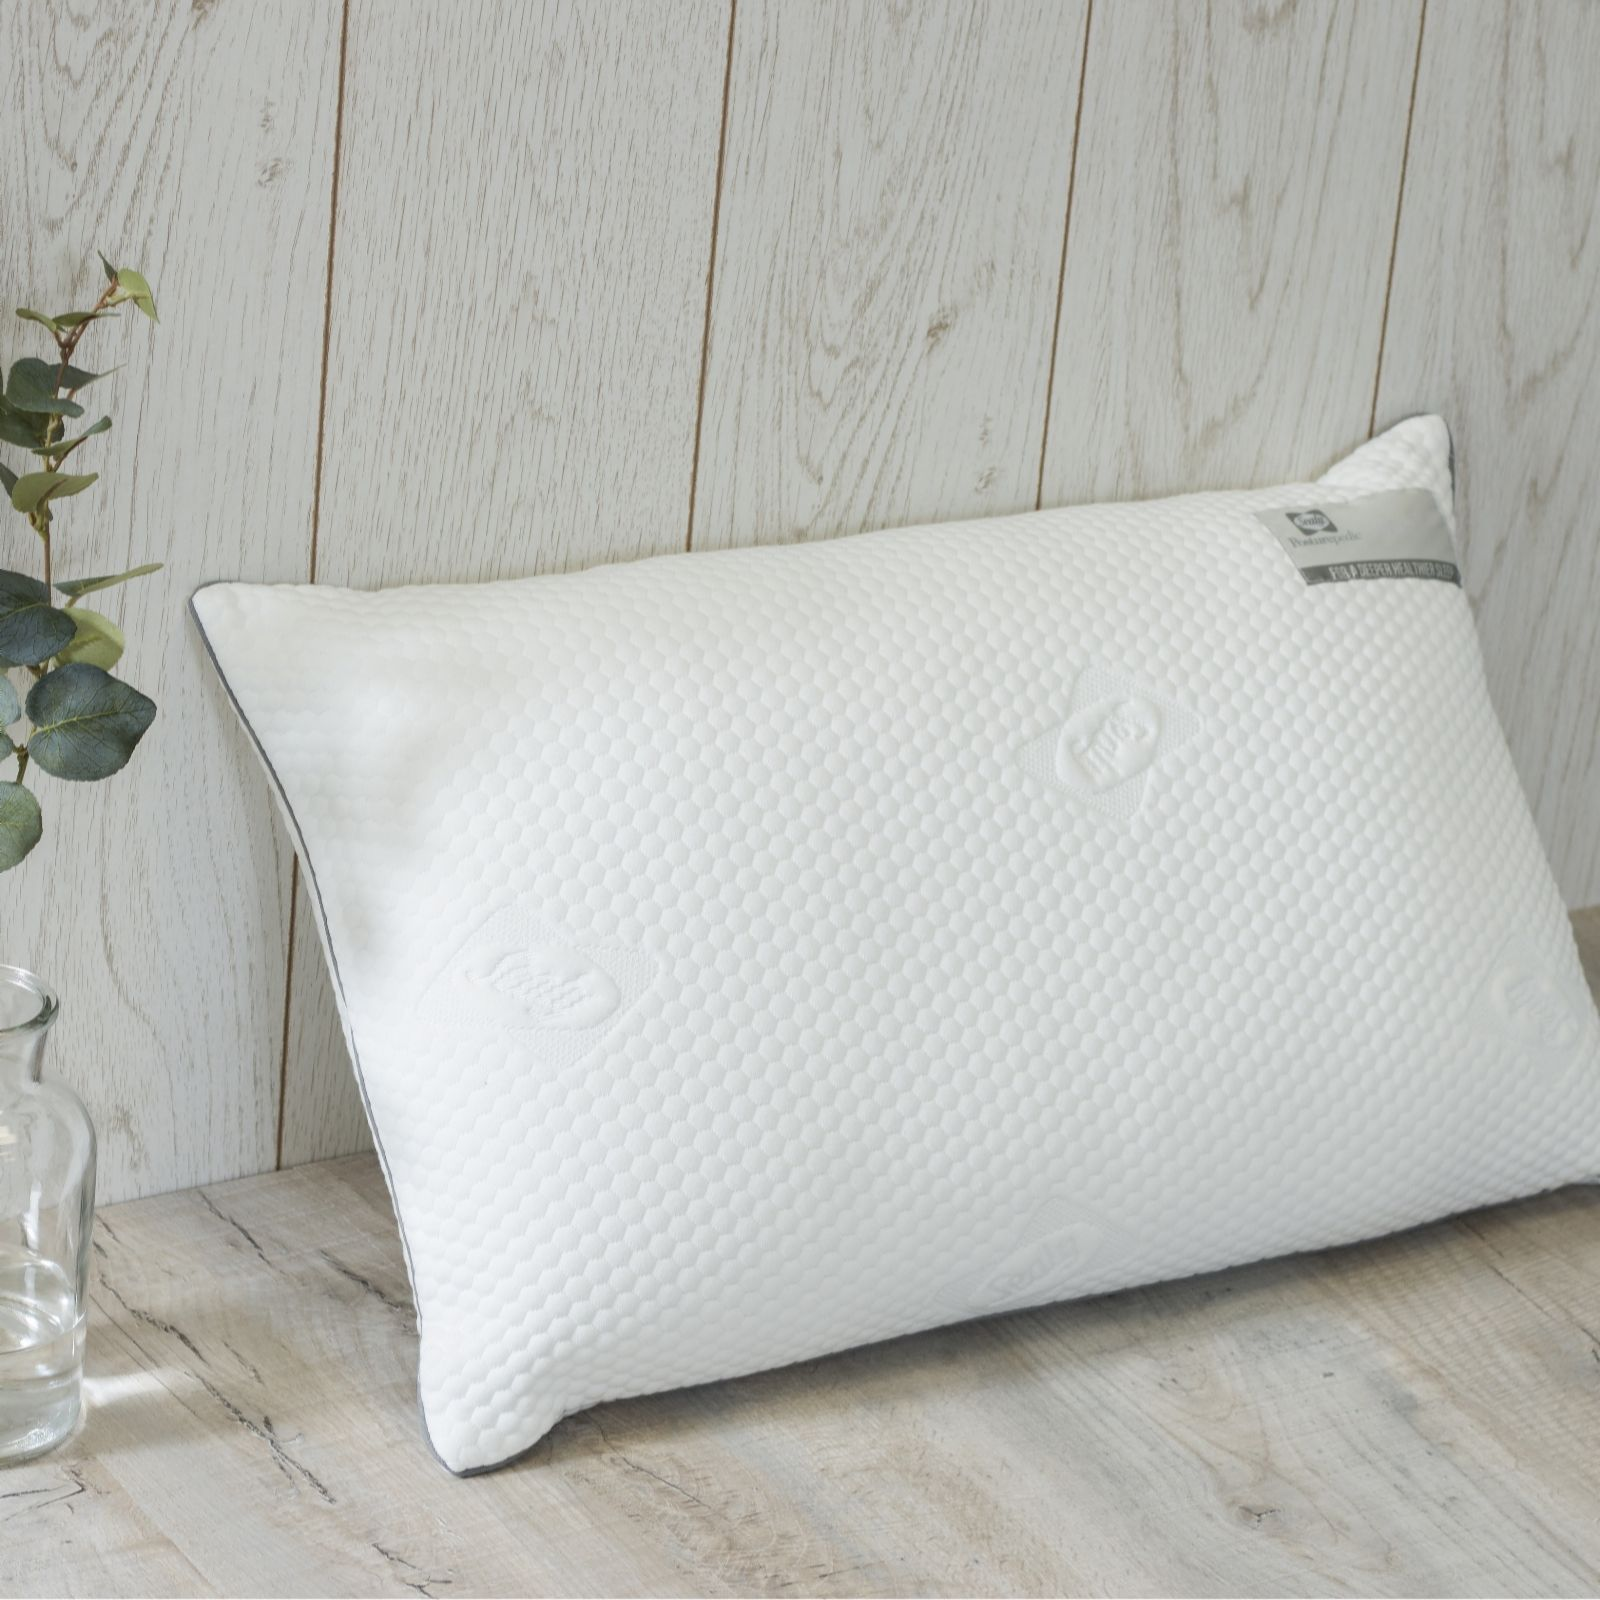 Sealy — Pillows — Bedding — Home & Kitchen - QVC UK